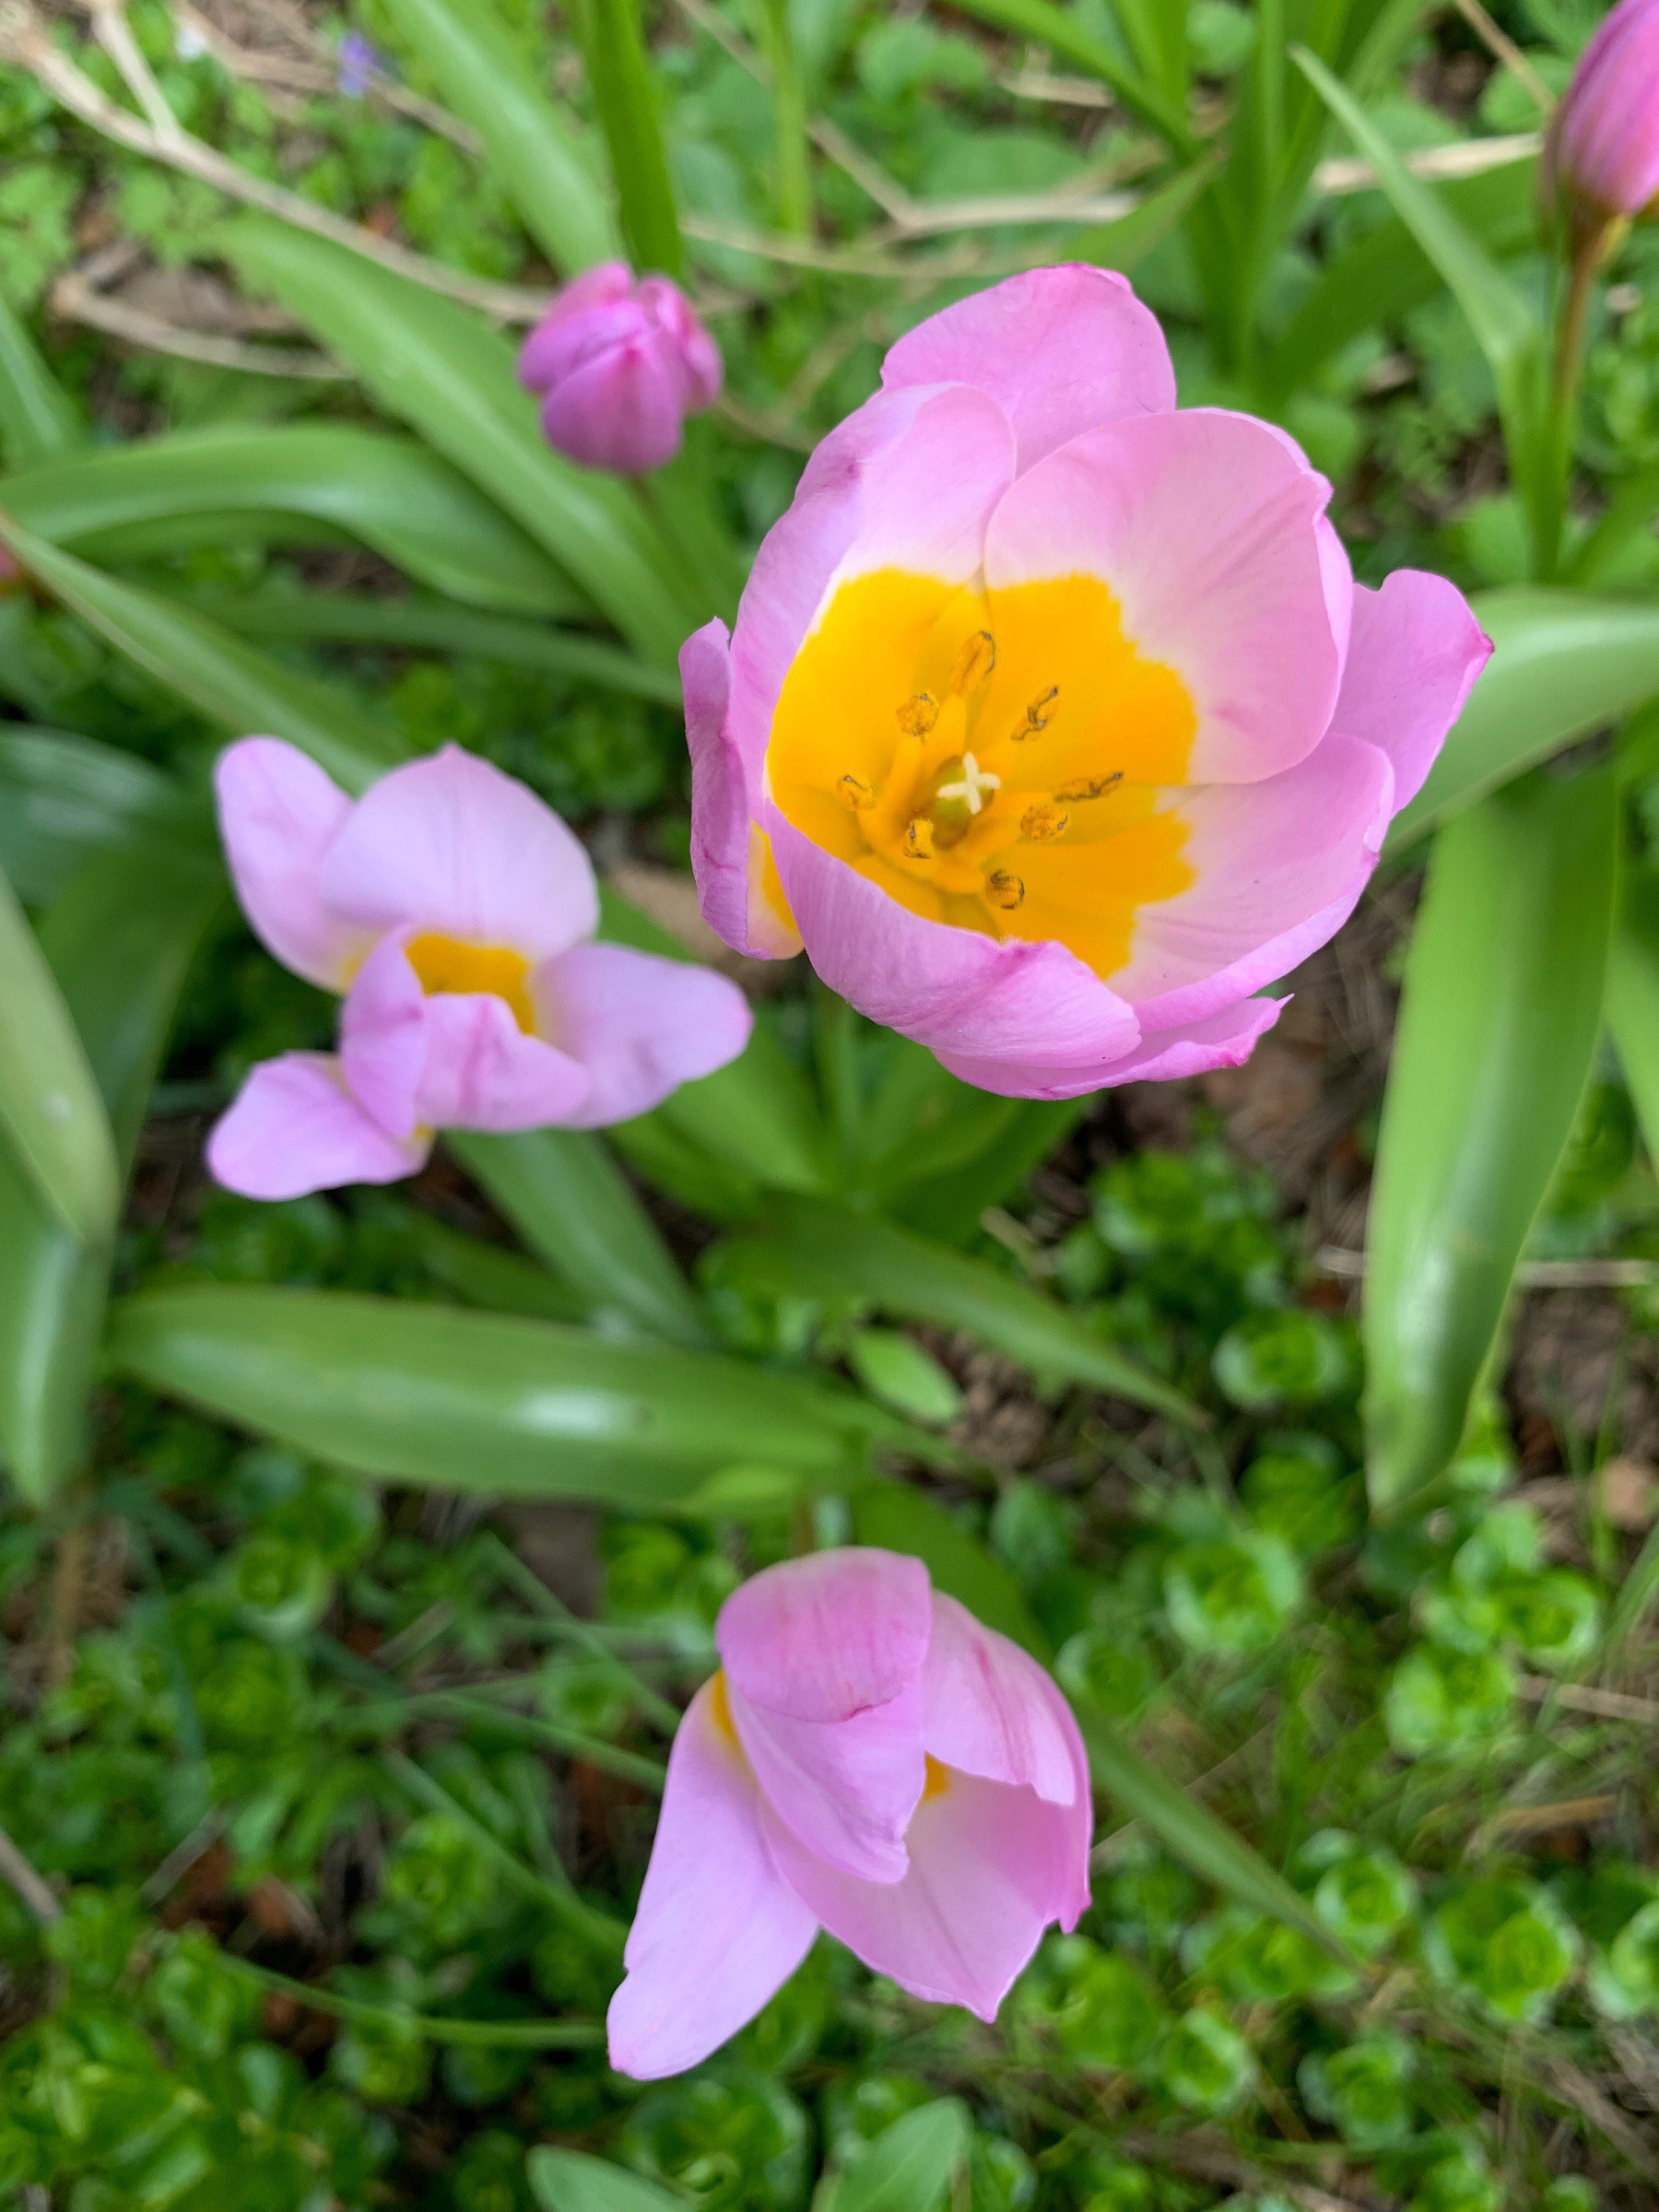 Looking down on a group of pink tulips eith egg yolk yellow centres